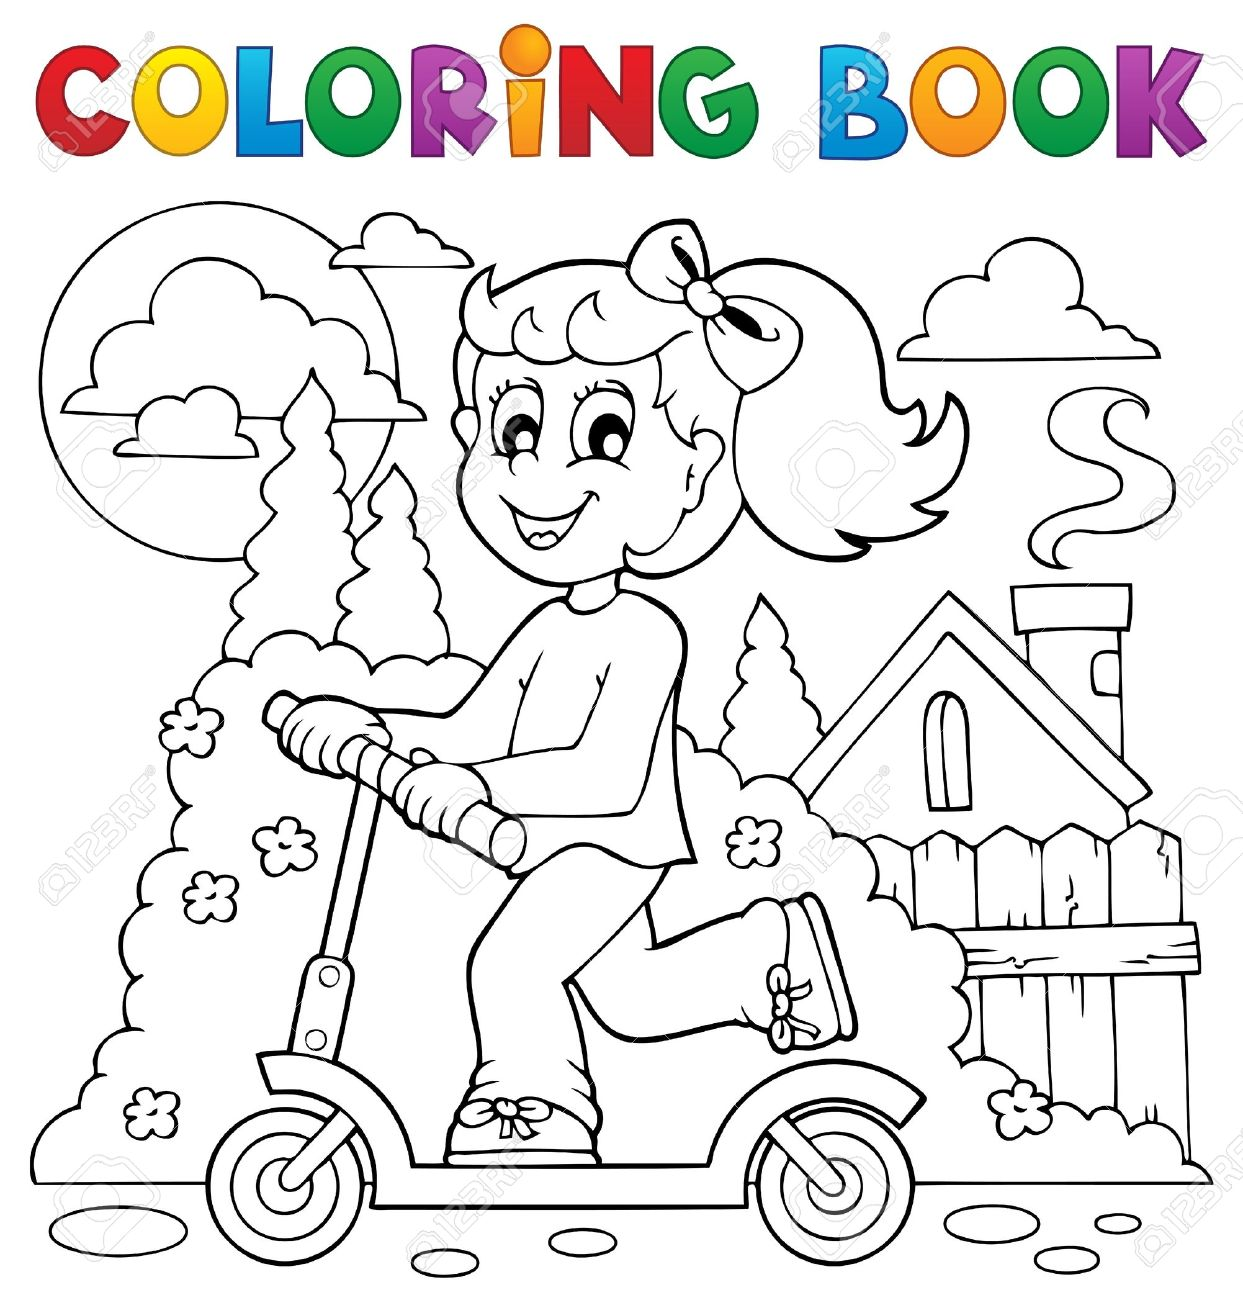 coloring book kids play theme royalty free cliparts vectors and - Kids Coloring Book